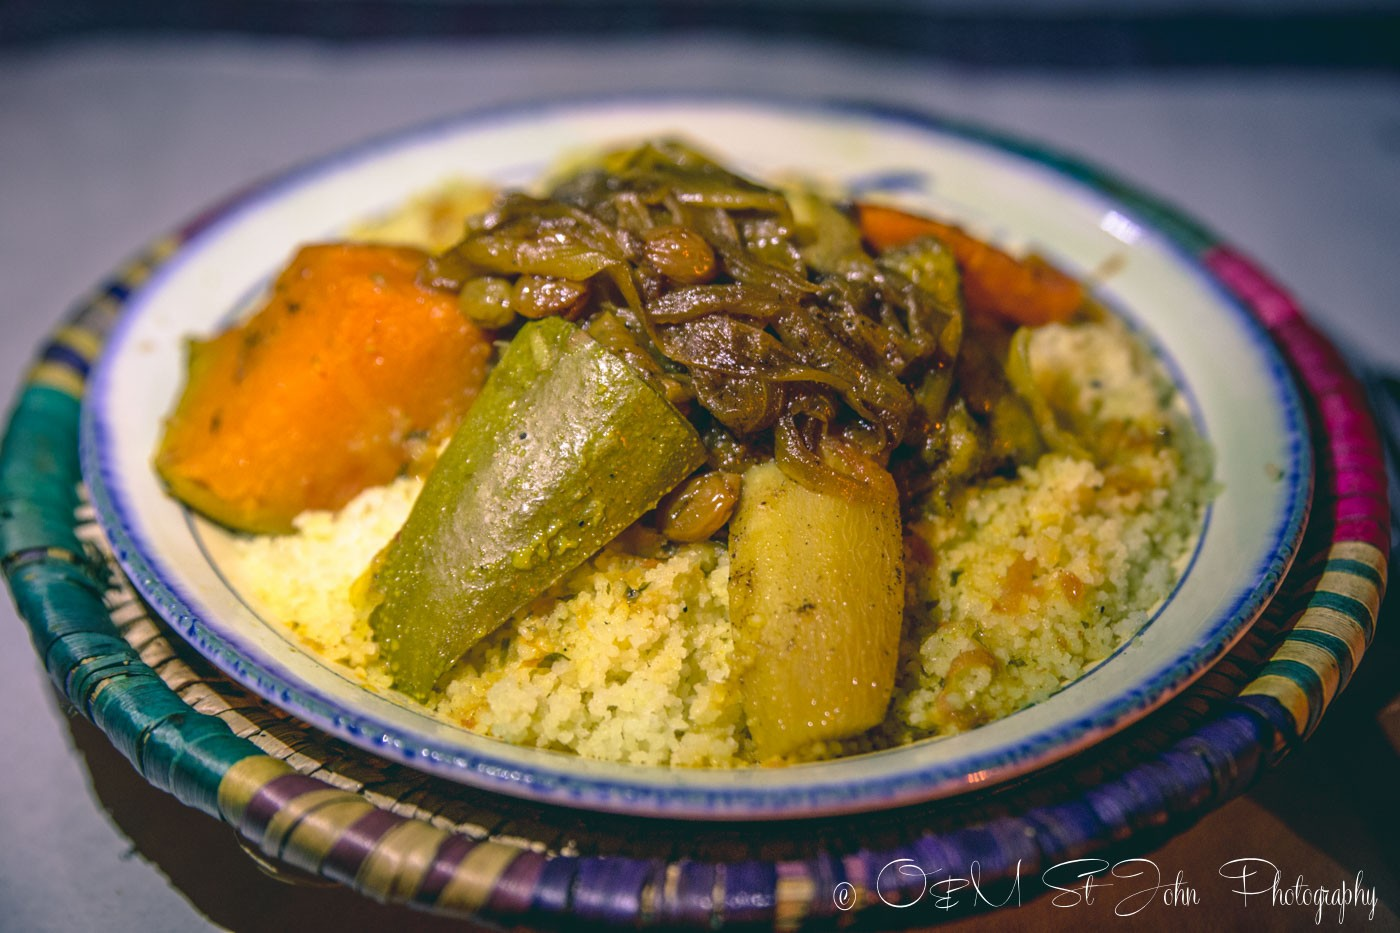 Moroccan food: Vegetarian couscous